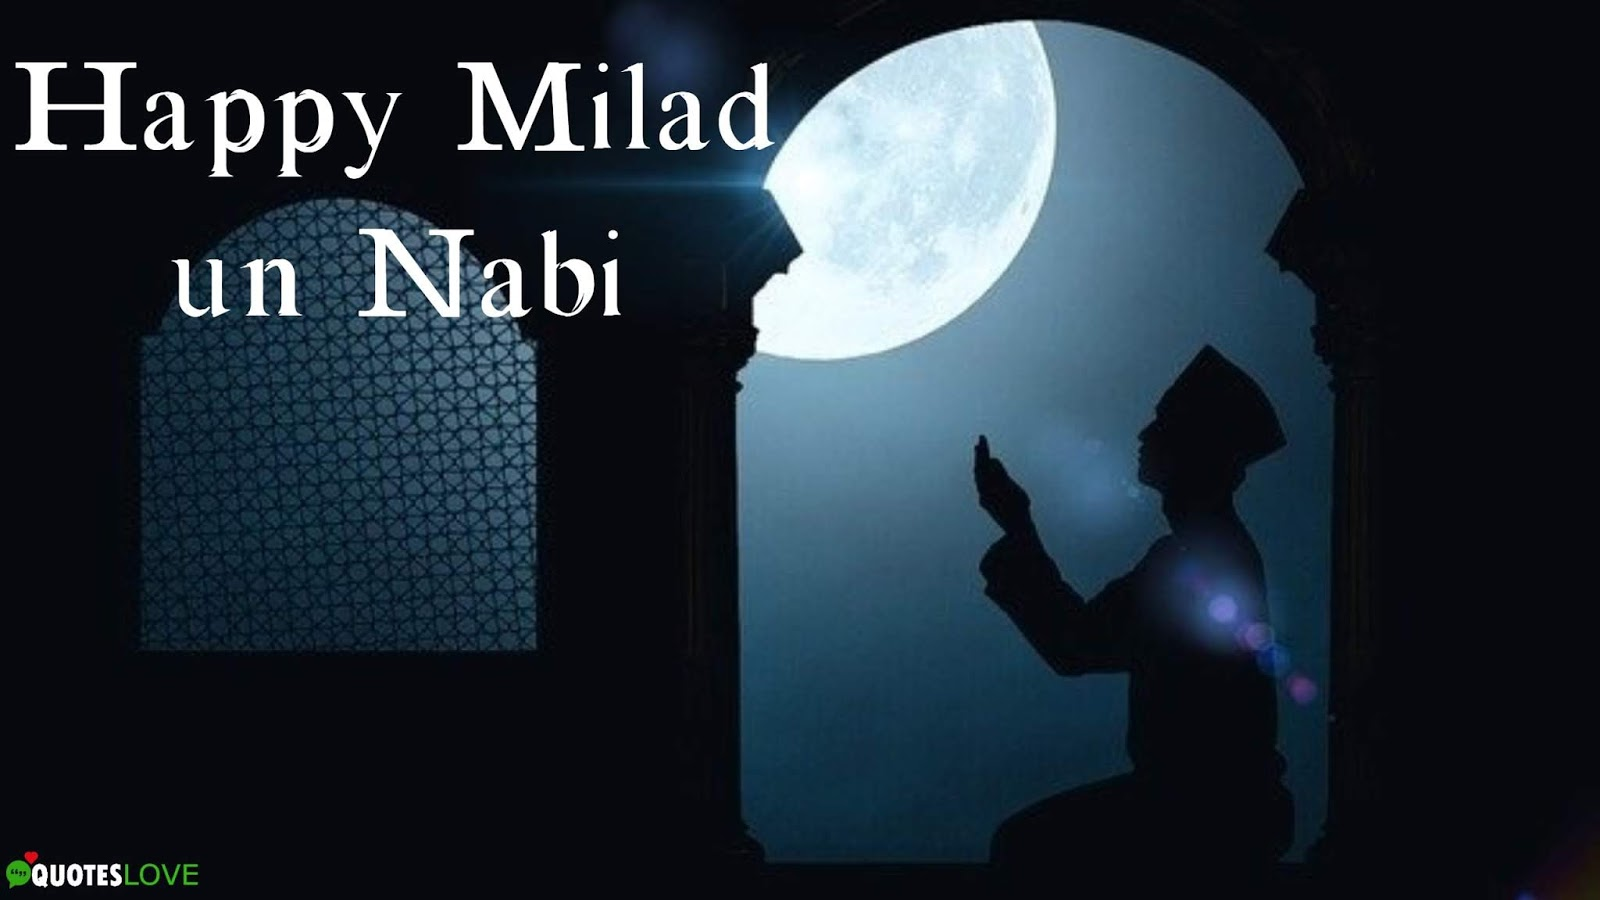 (Latest) Happy Milad un Nabi Images